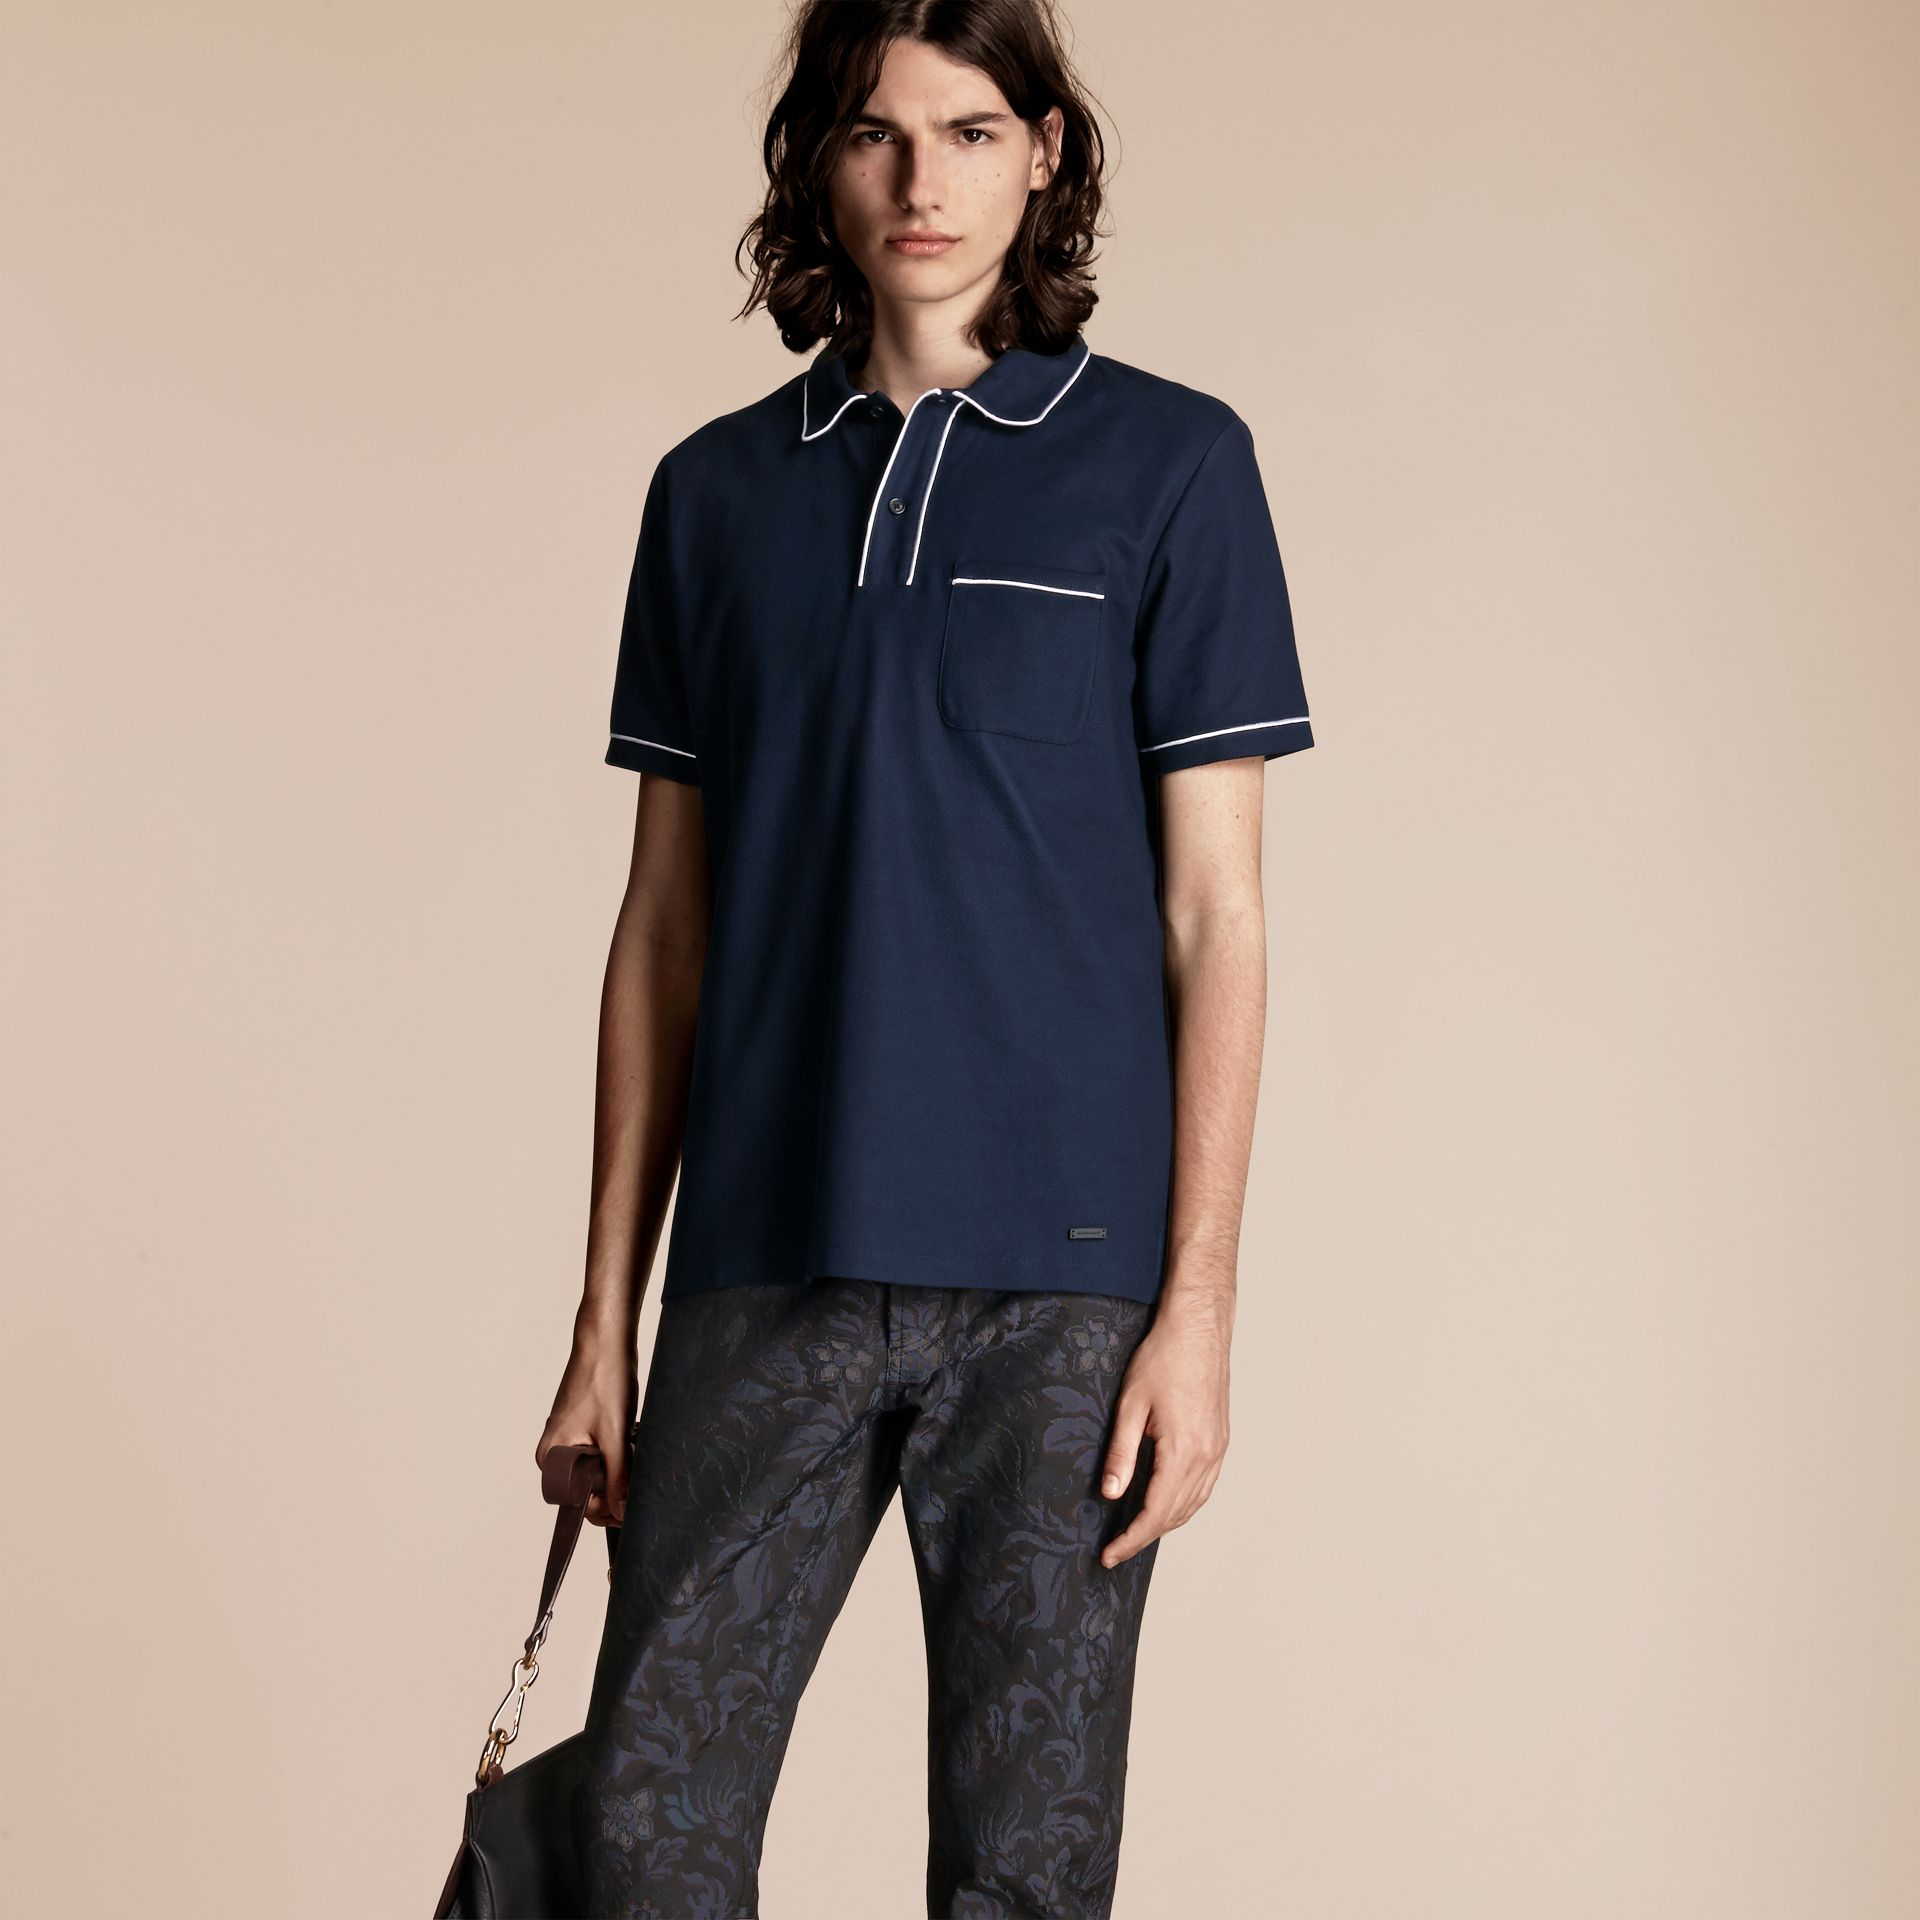 Navy Piped Cotton Piqué Polo Shirt Navy - gallery image 1